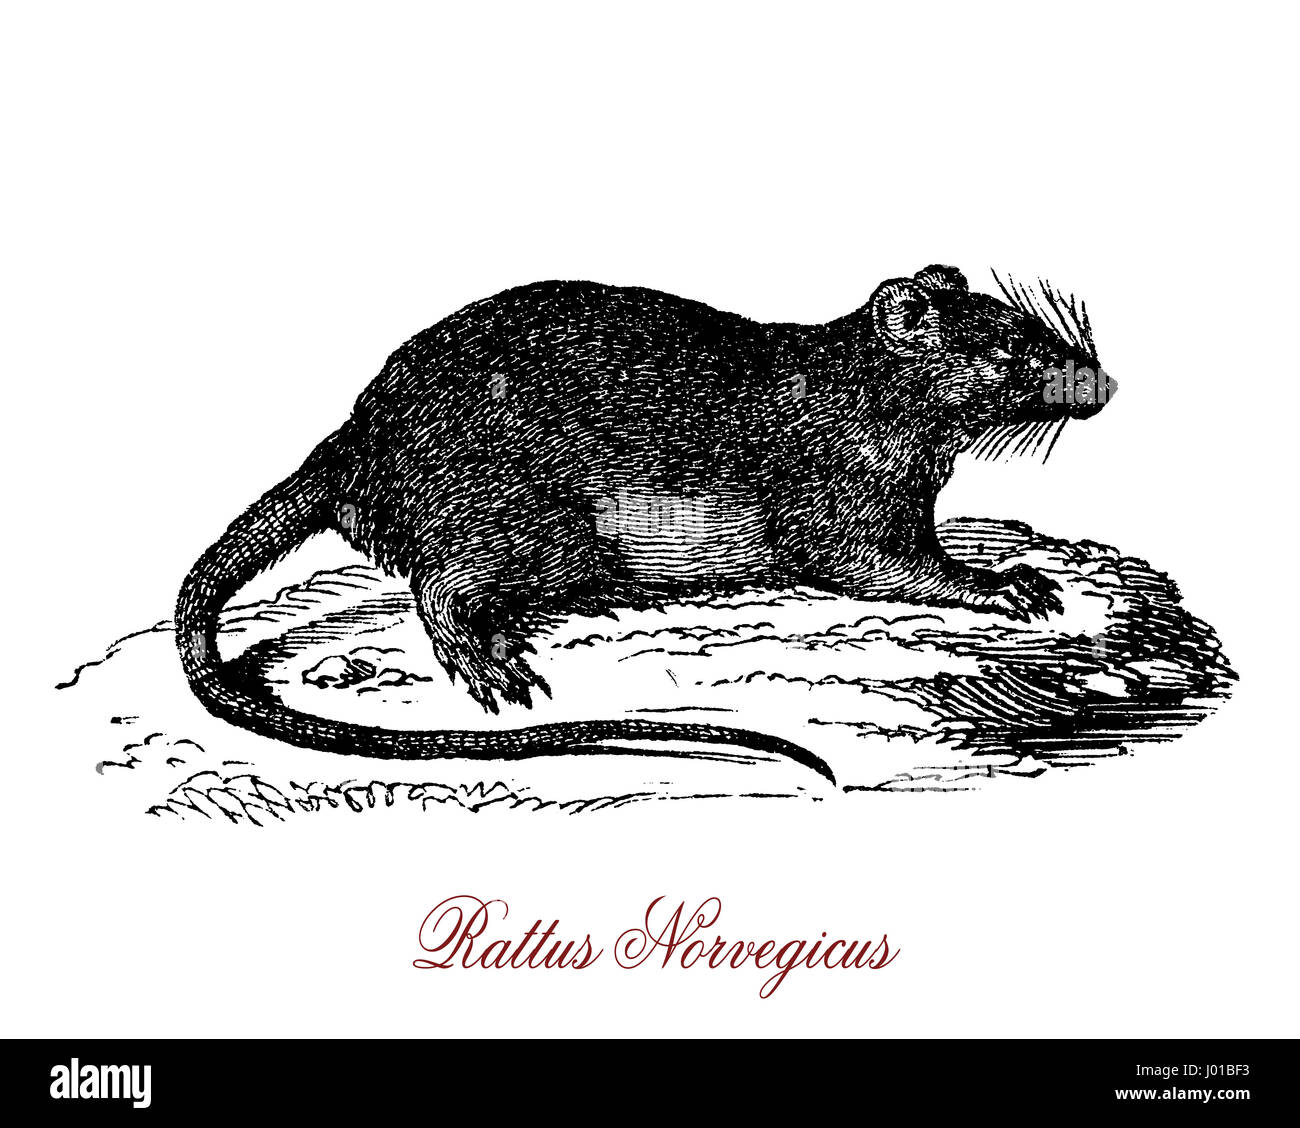 The rattus norvegicus is beste known as common rat, street rat, sewer rat, or just rat. One of the largest muroids, - Stock Image